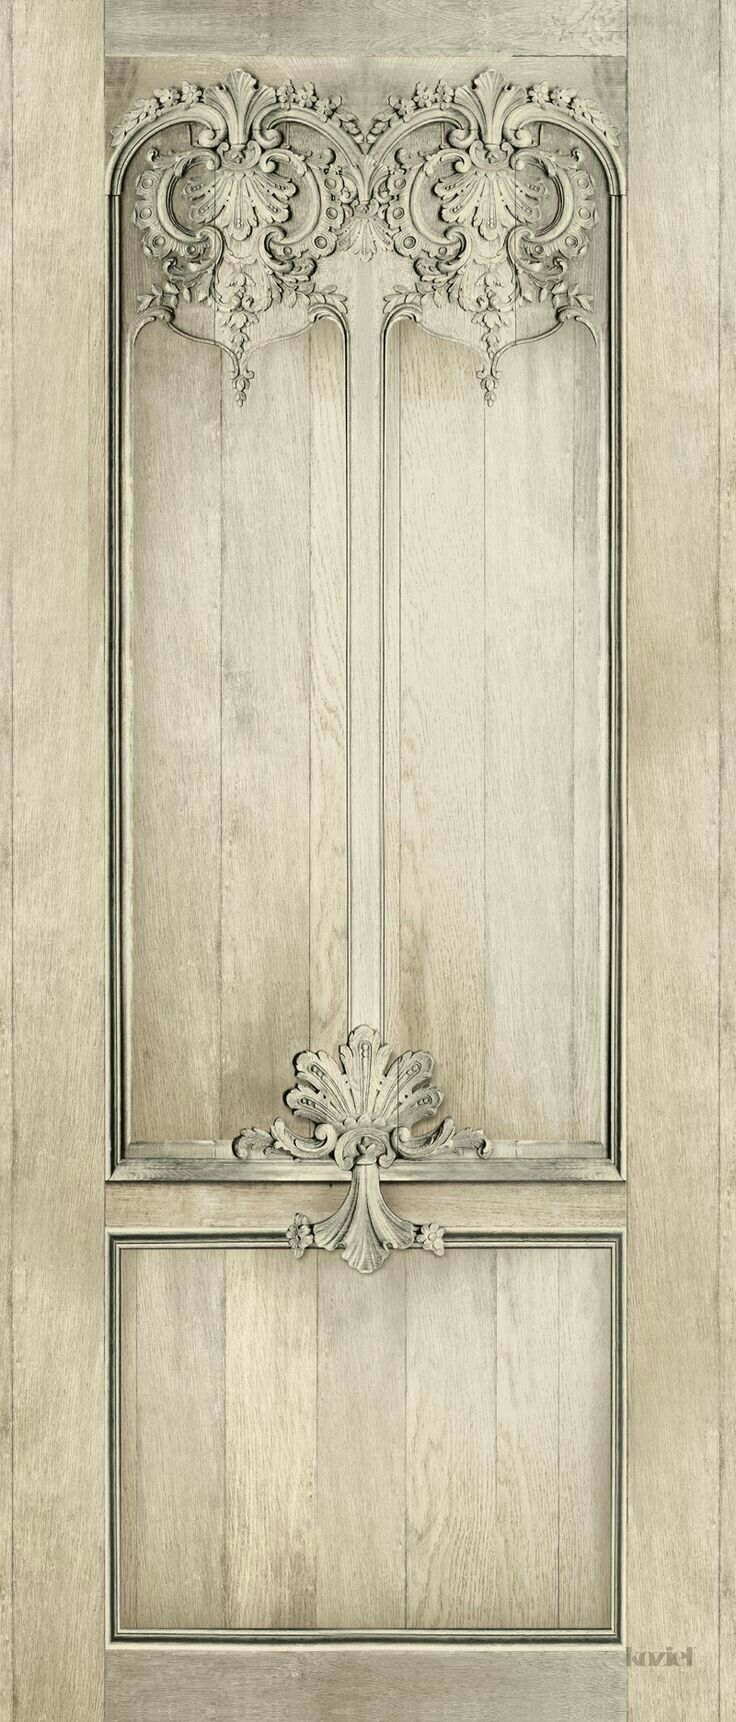 297 best Carving images on Pinterest | Front doors, Wood doors and ...